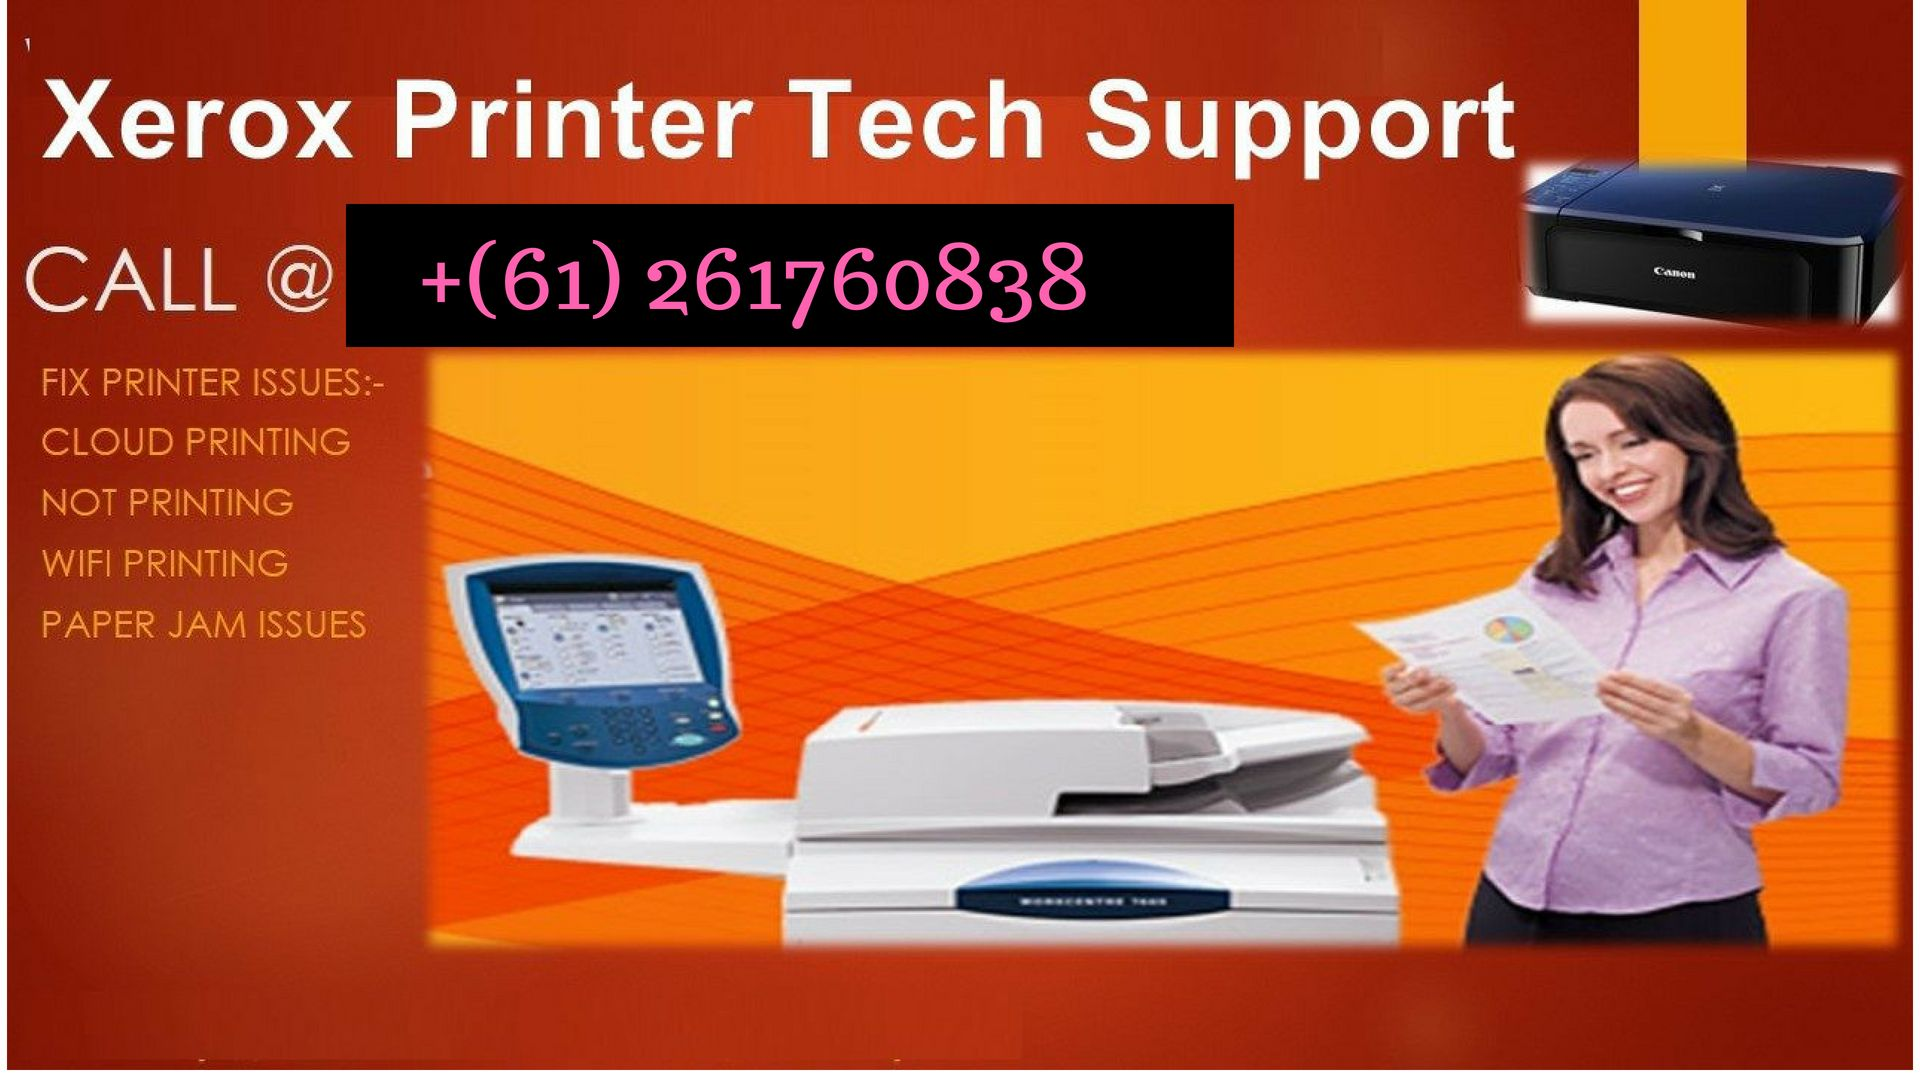 Xerox Support Number Australia 61 261760838 The Issues Which